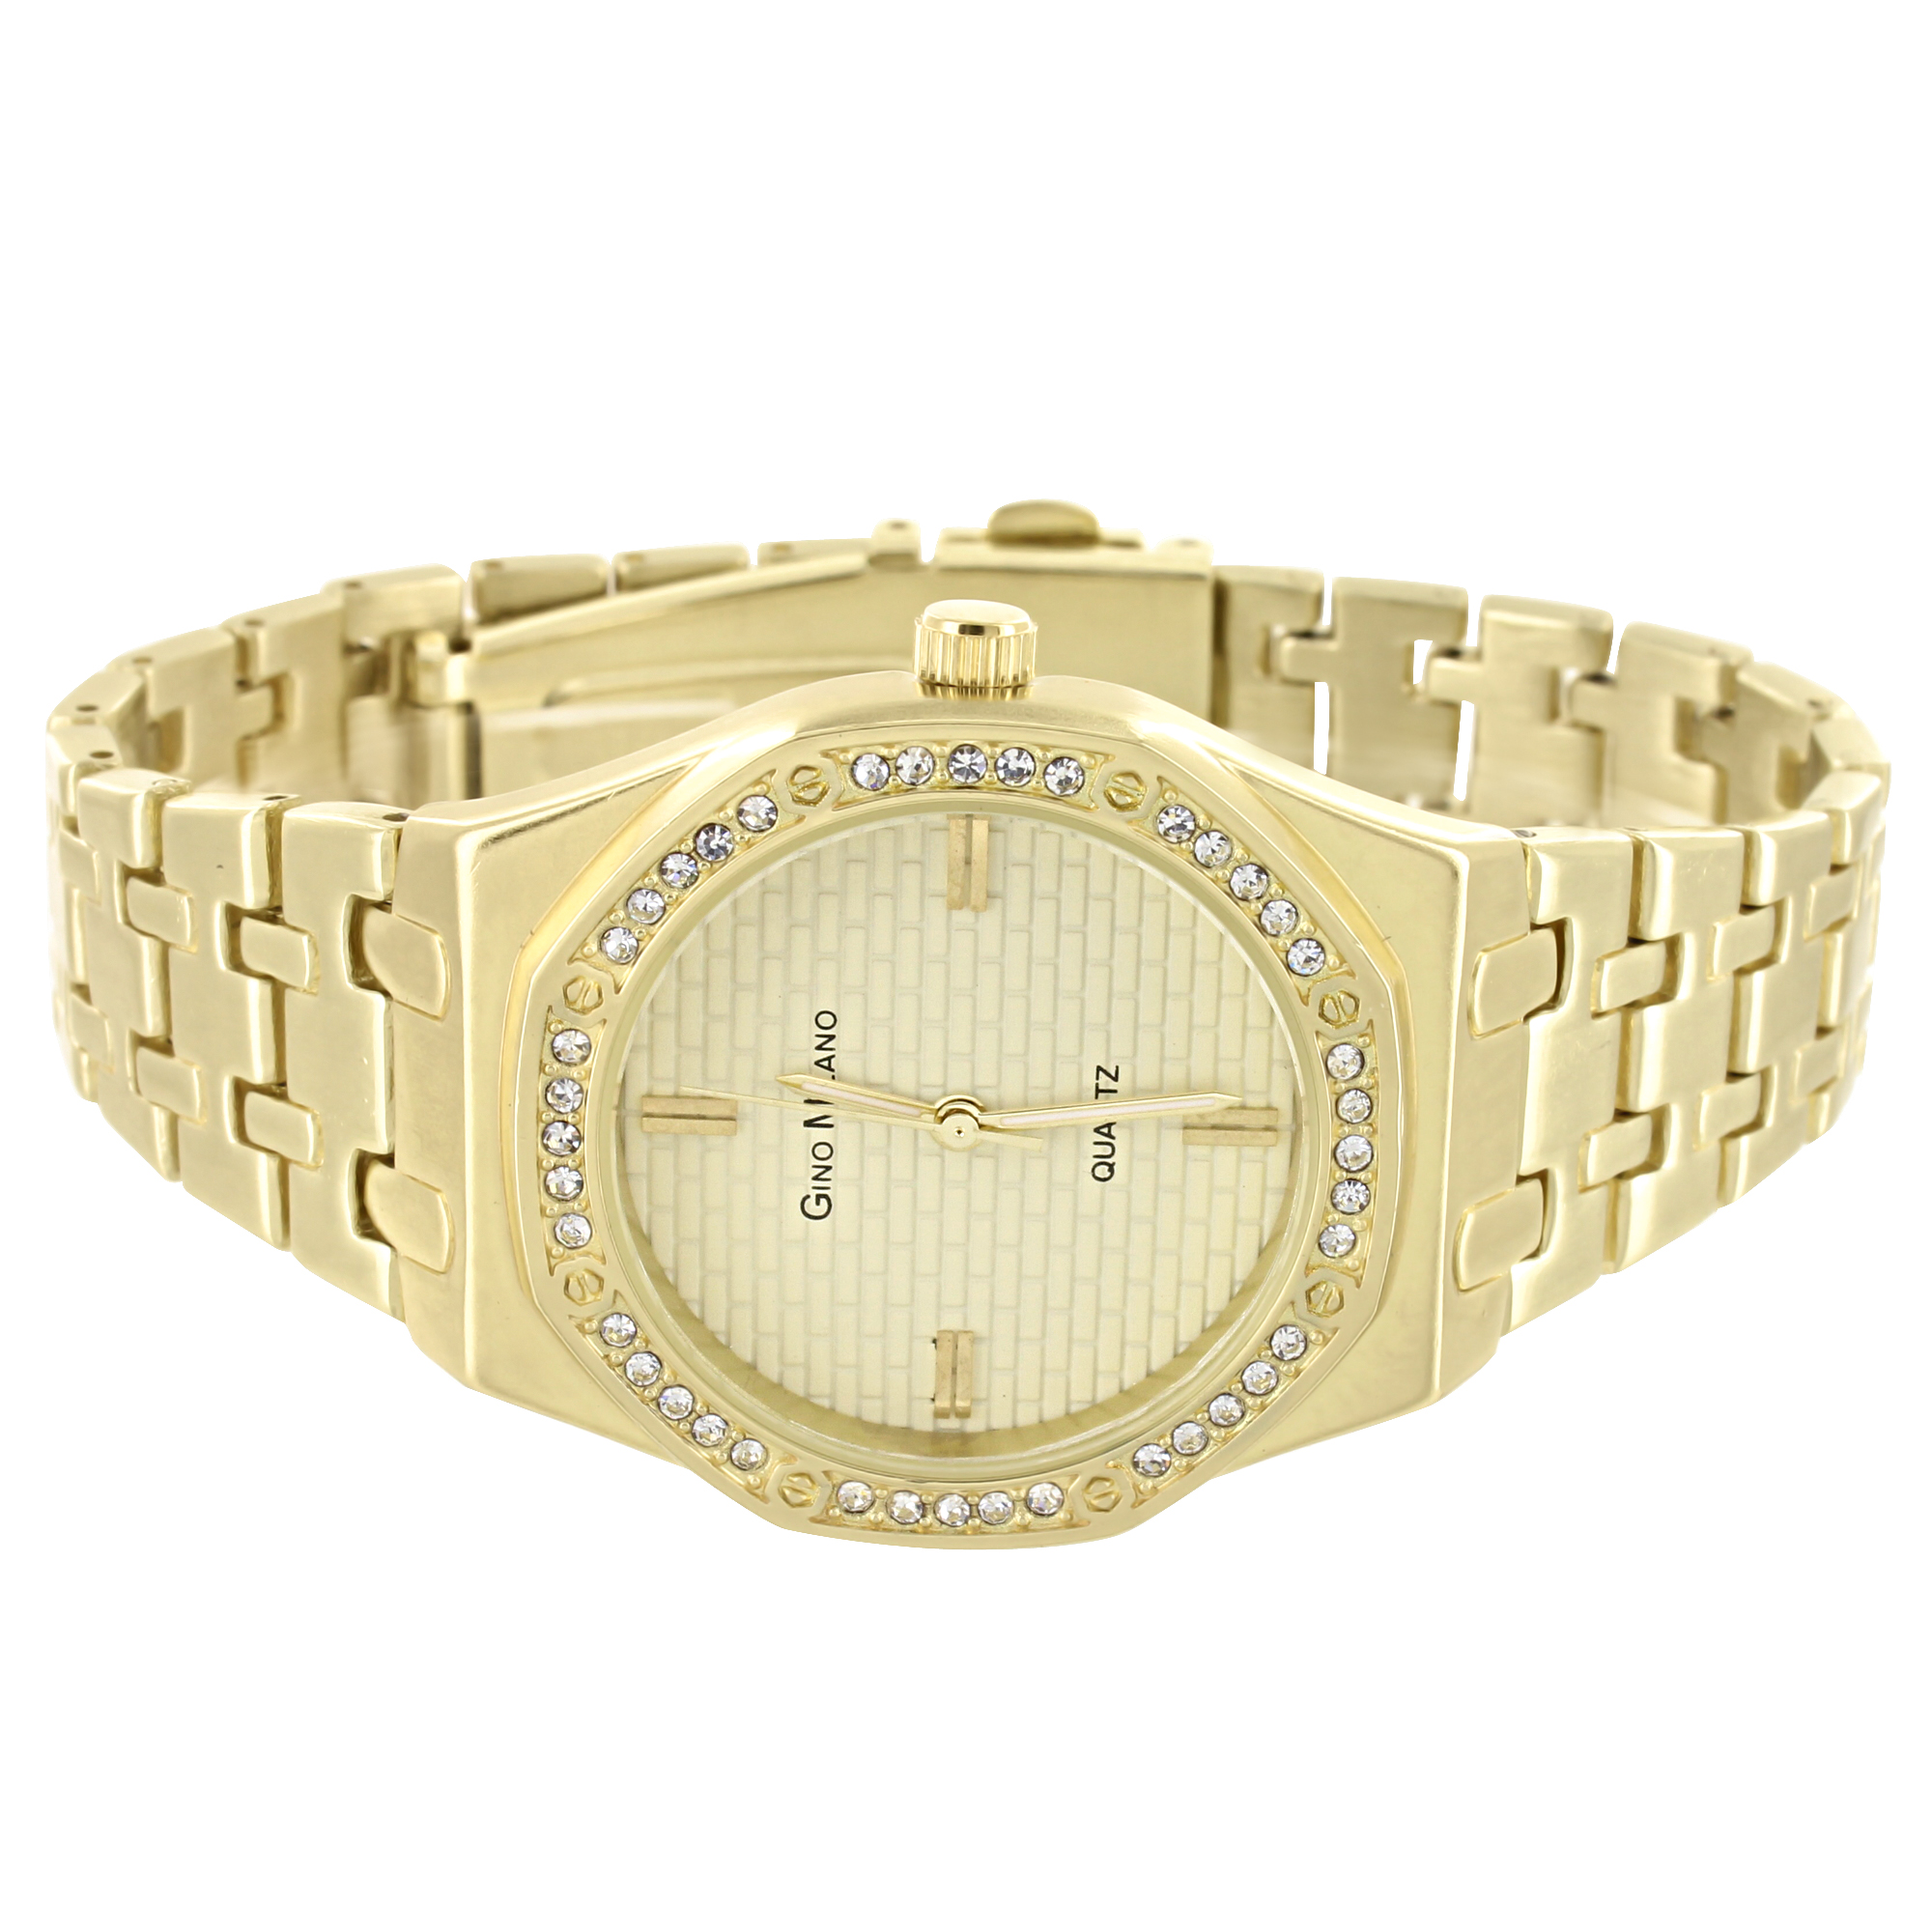 Octagon Dial Watch Gino Milano Designer Simulated Diamond Quartz Gold Tone Analog